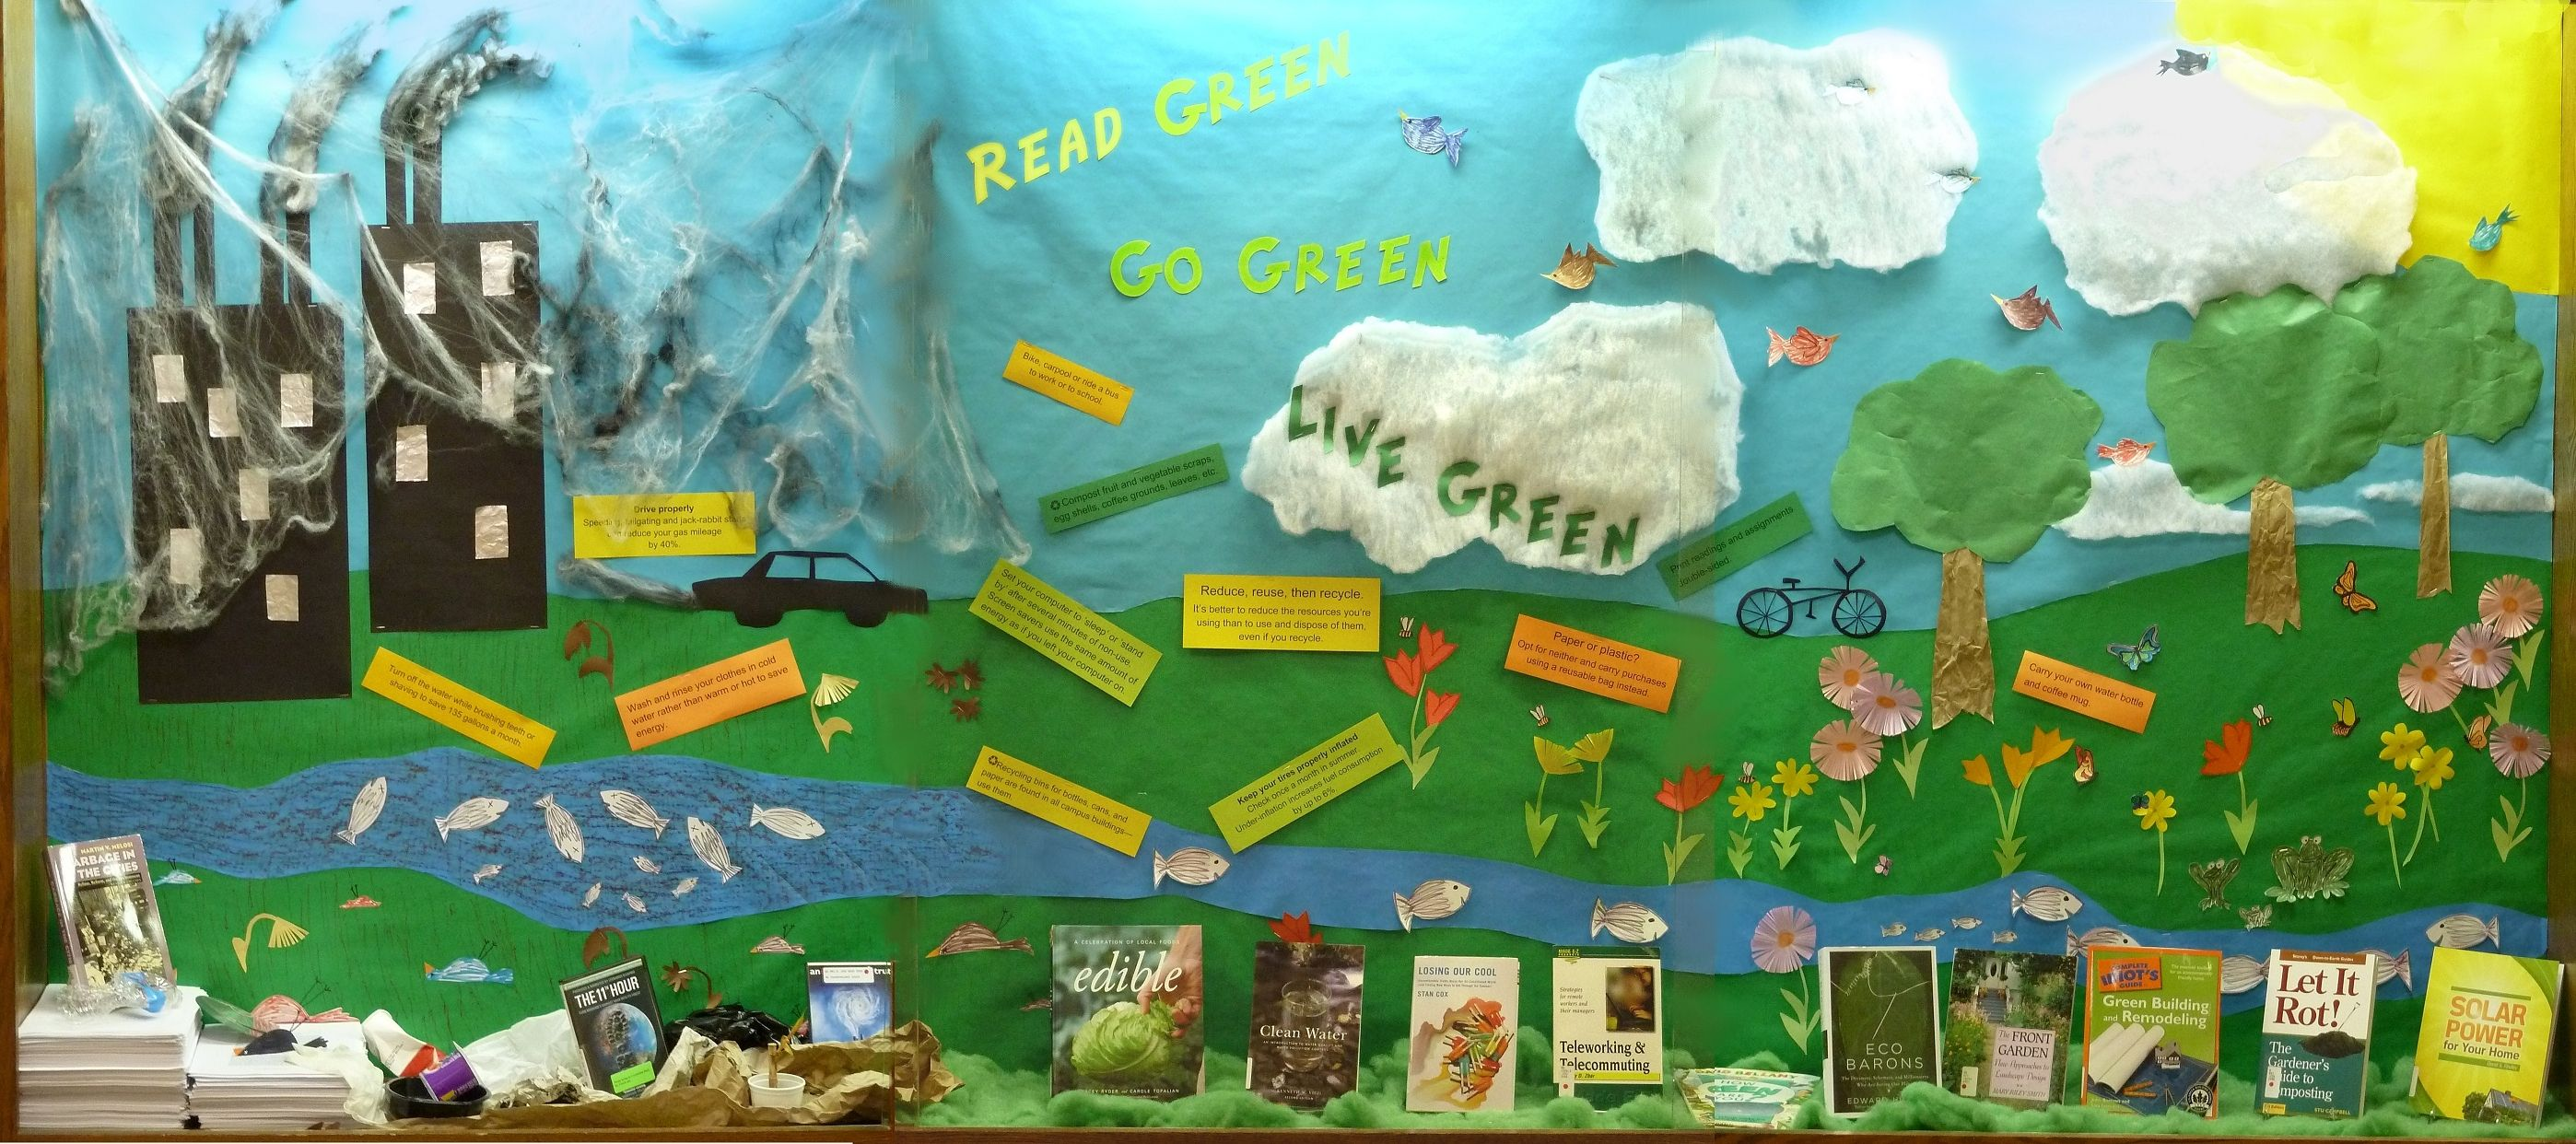 Read Green Go Green Live Green Library Book Display